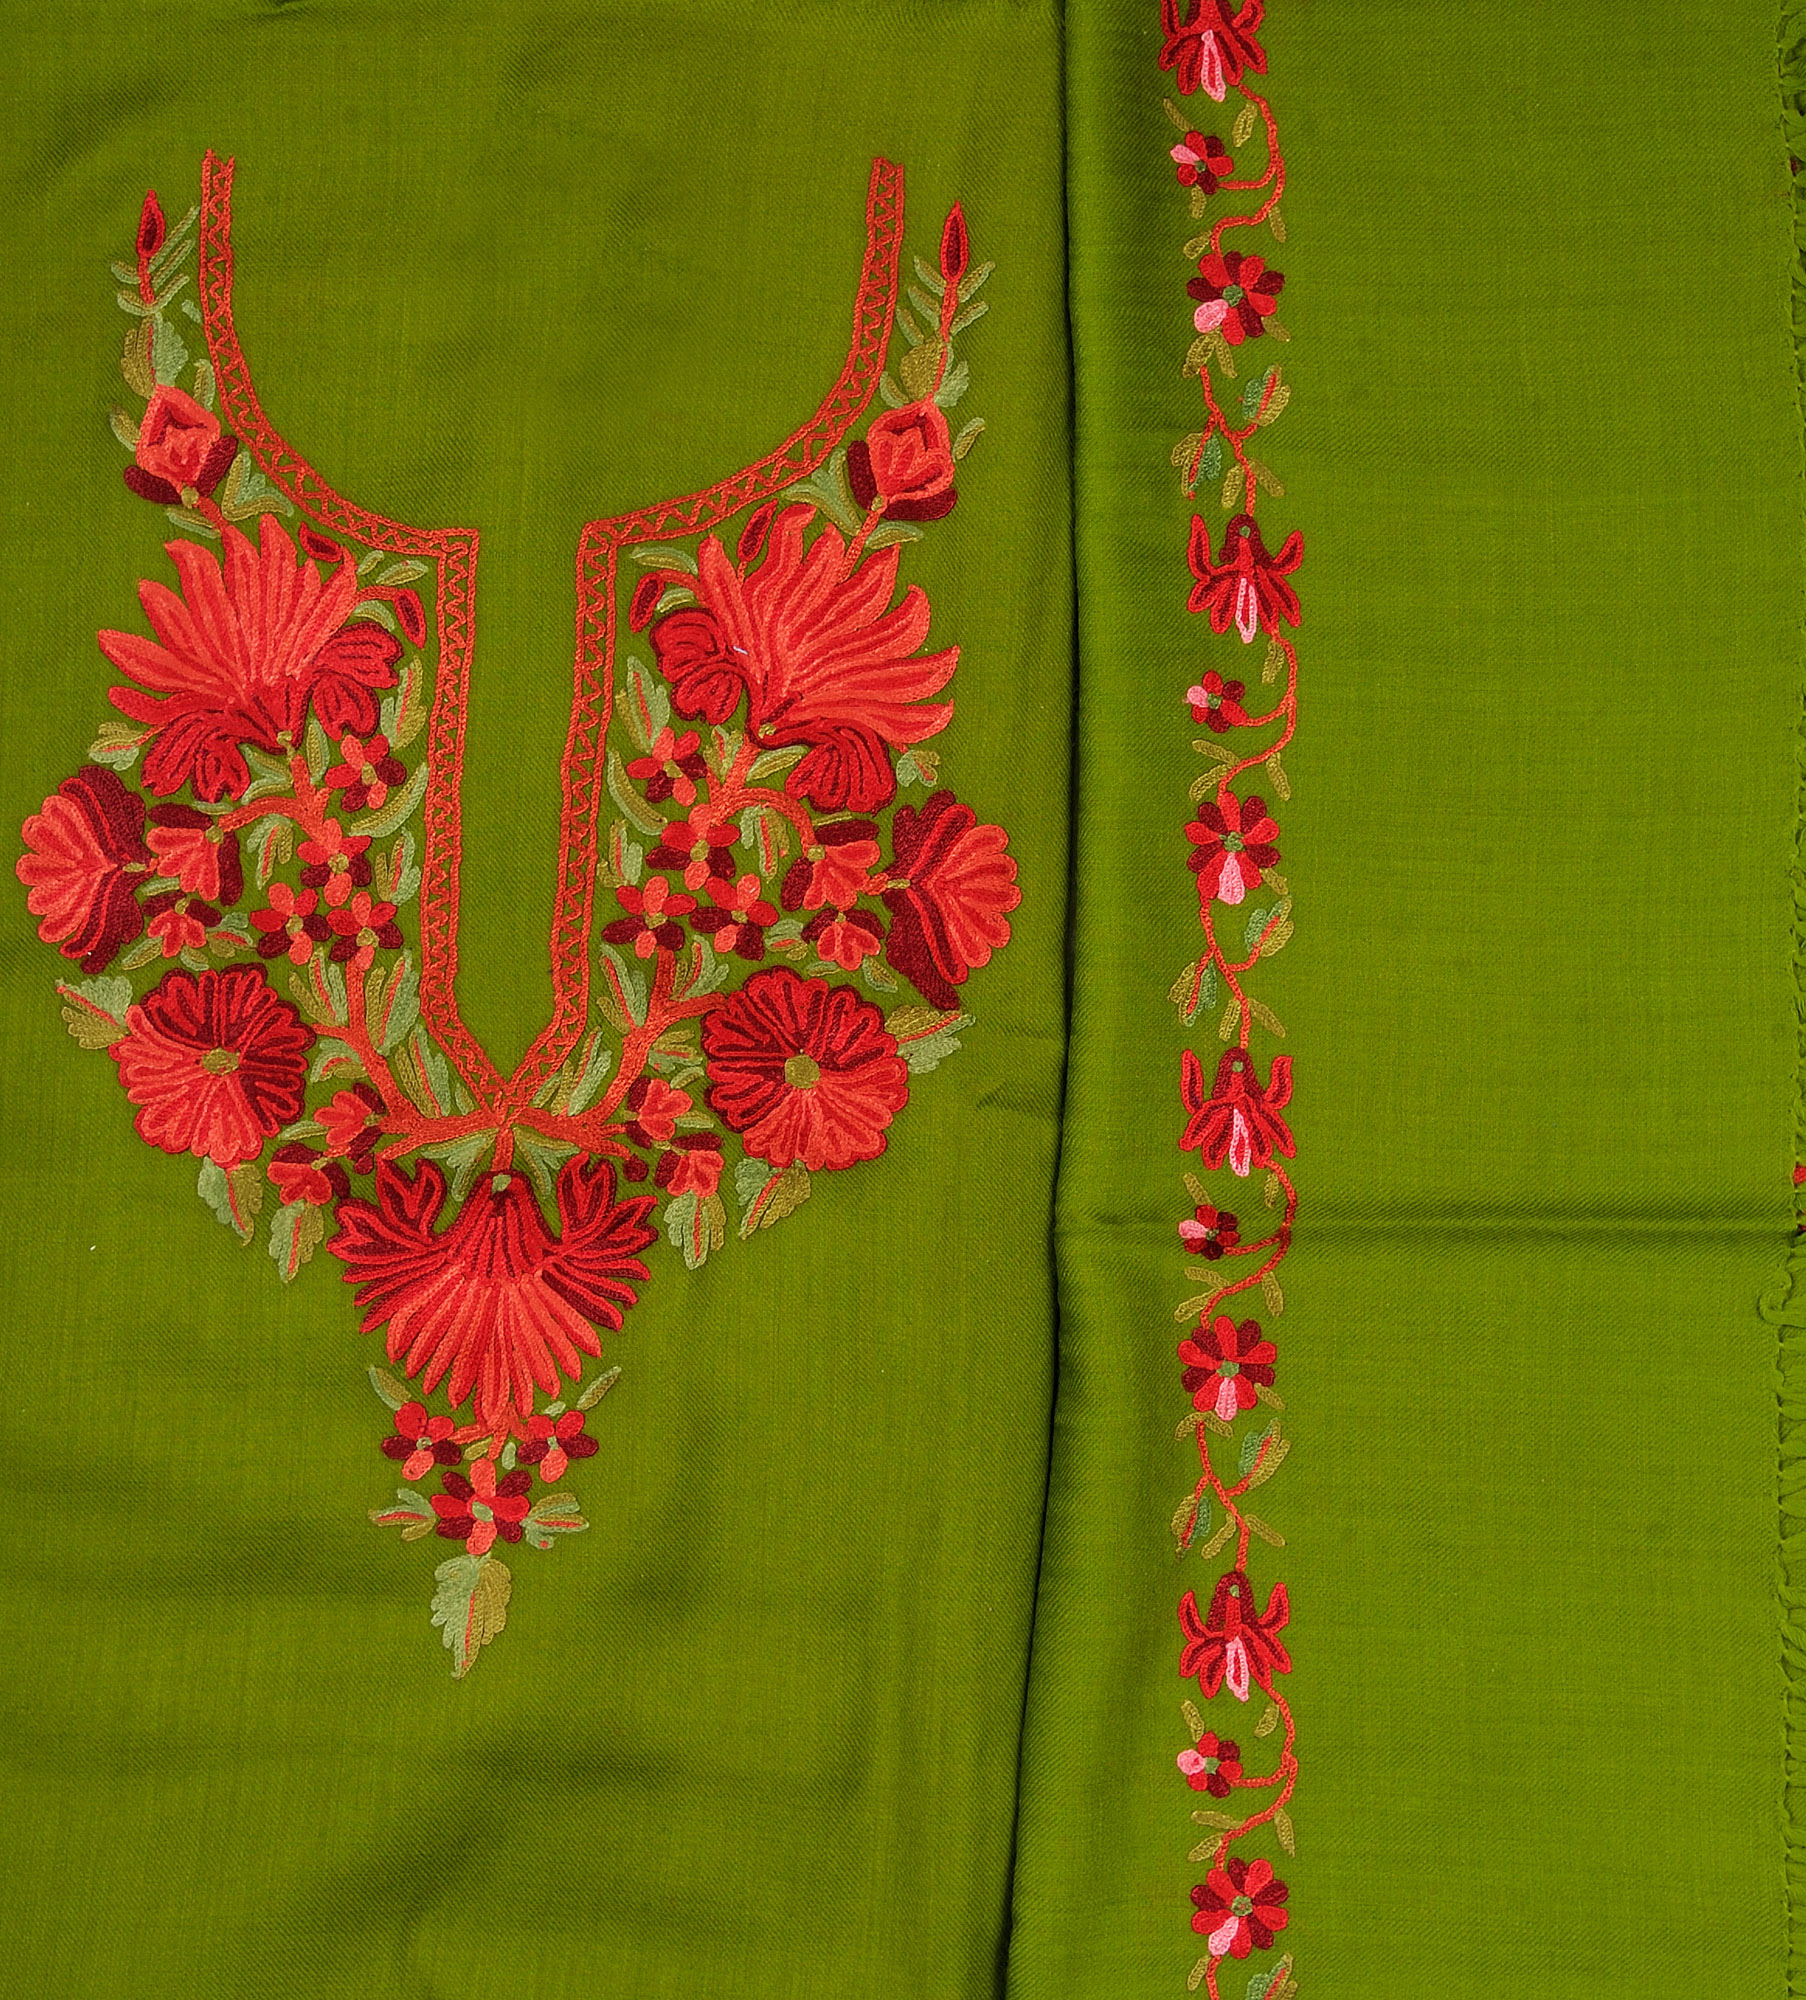 Fluorite Green Salwar Kameez Fabric From Kashmir With Hand Embroidery On Neck